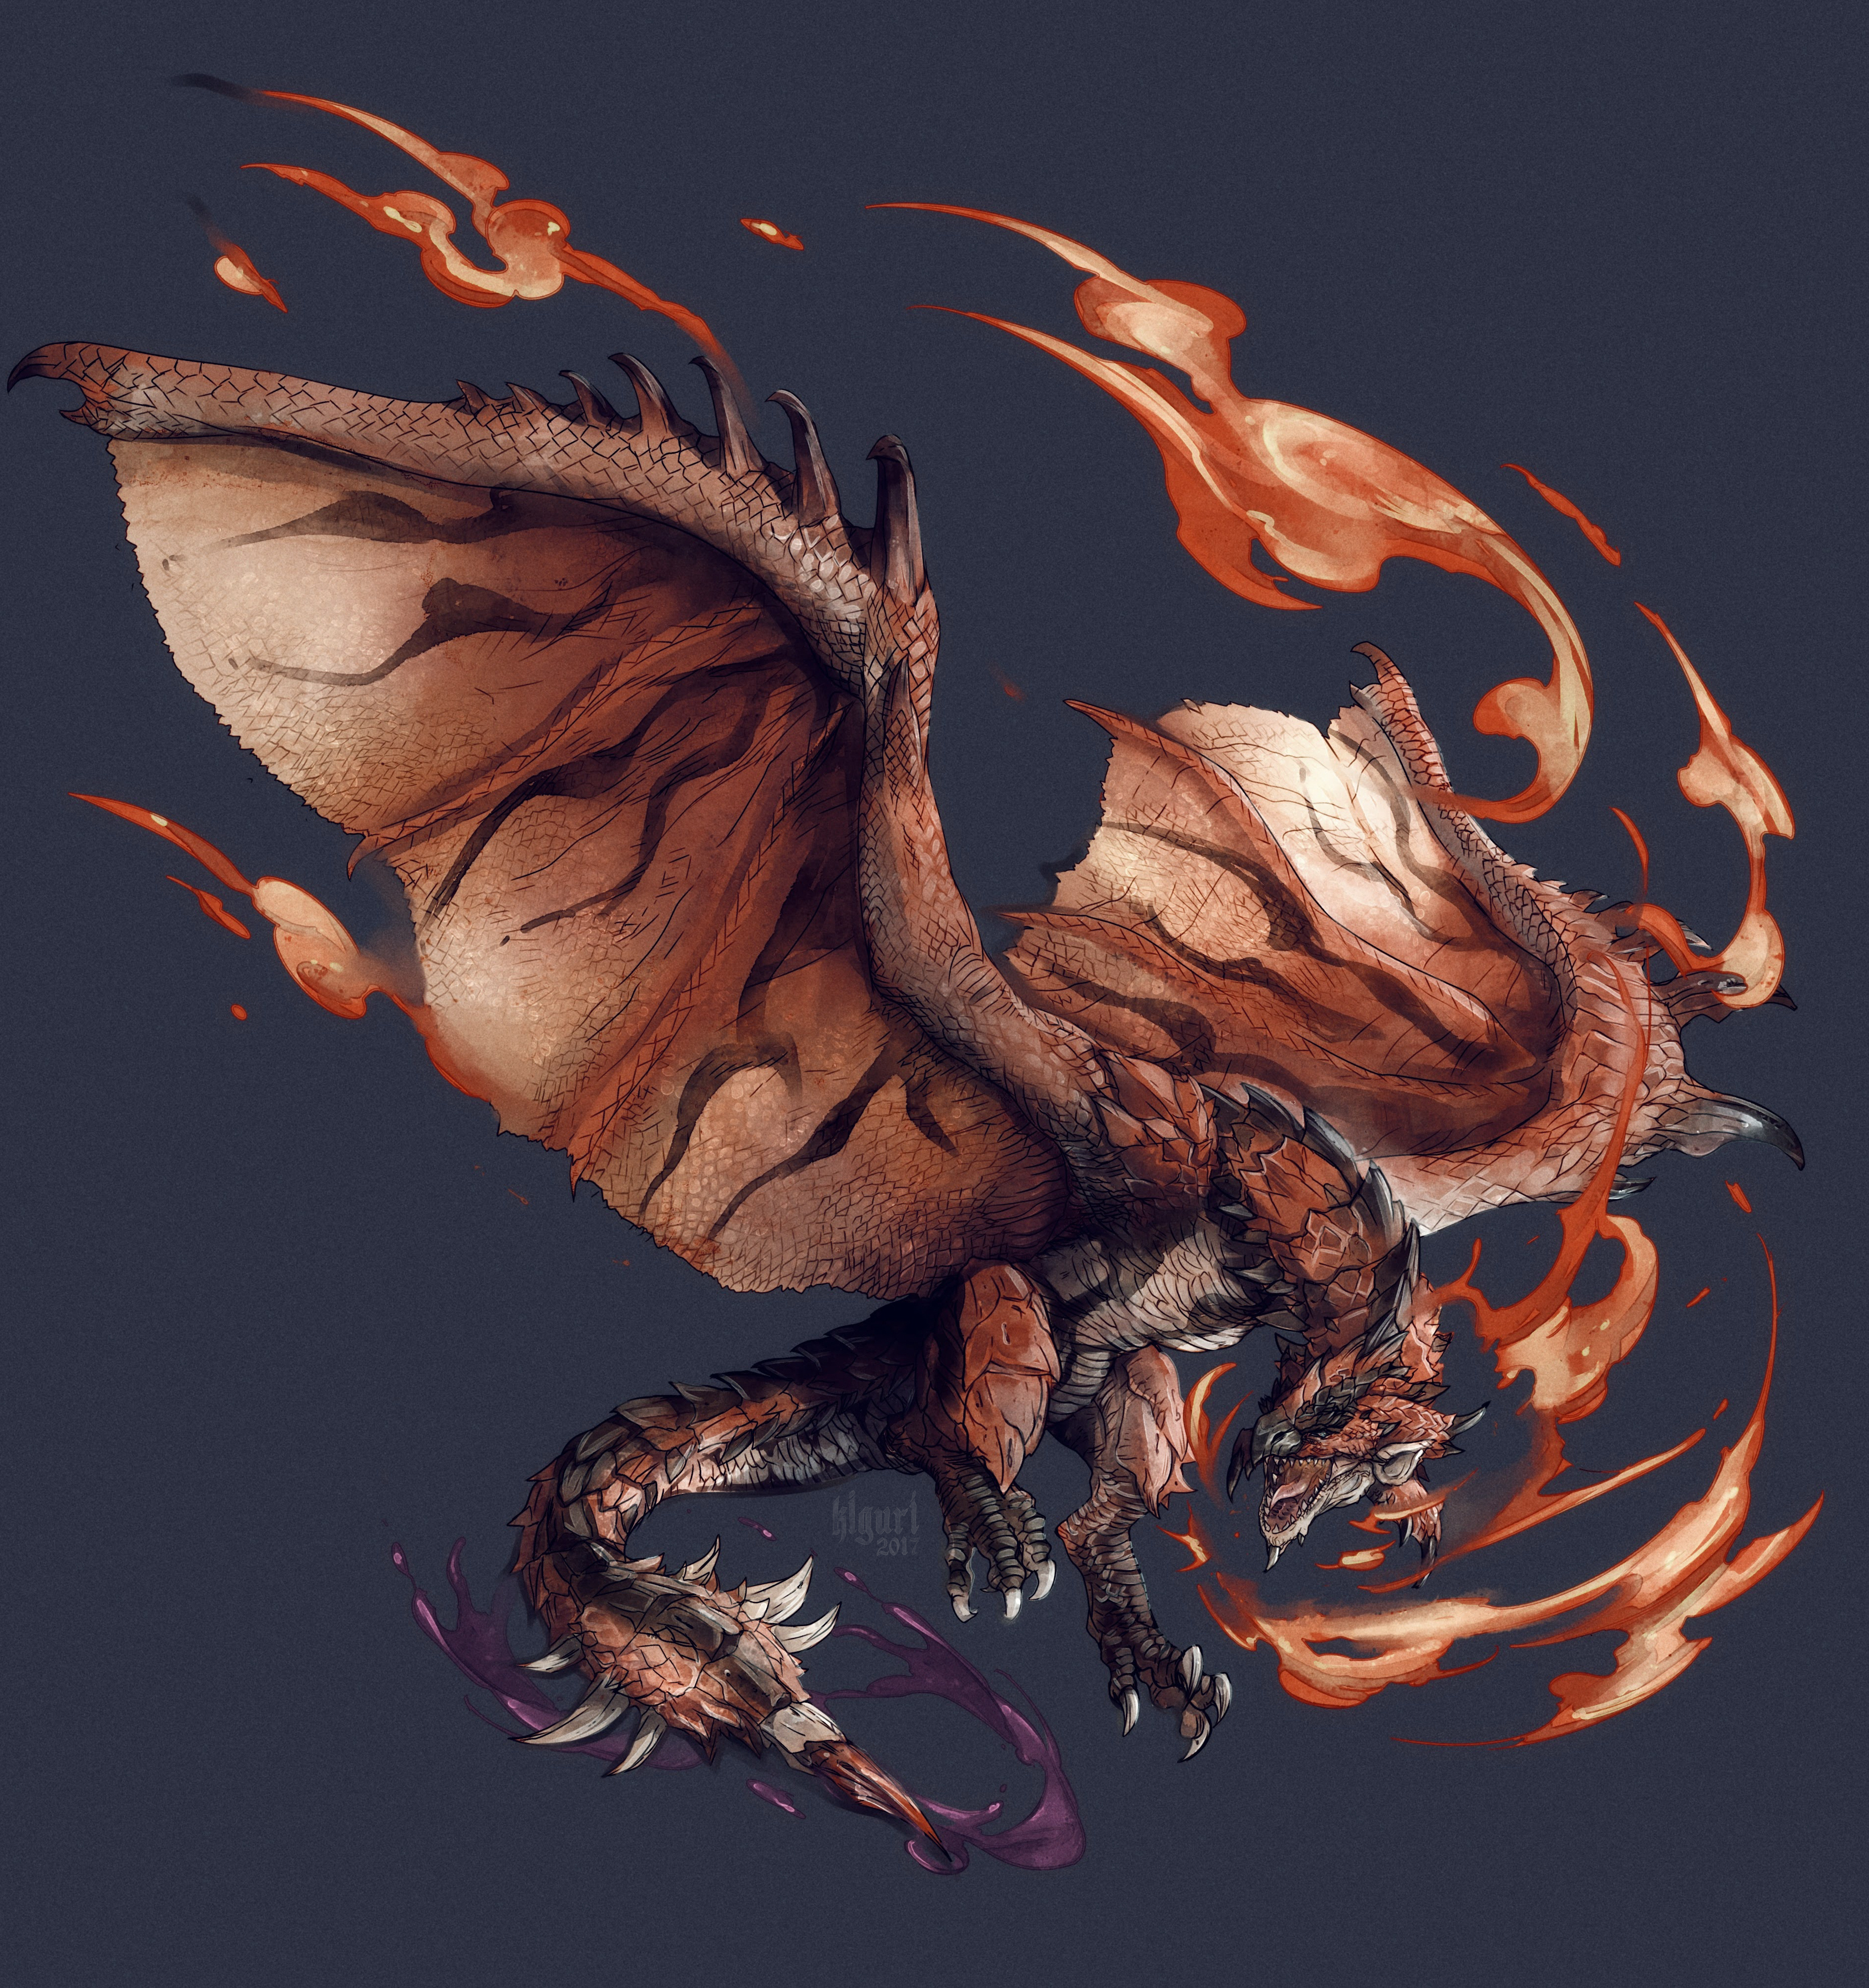 e926 2017 absurd_res alpha_channel ambiguous_gender capcom dragon feral hi_res kiguri membranous_wings monster_hunter open_mouth rathalos simple_background solo teeth tongue transparent_background video_games wings wyvern